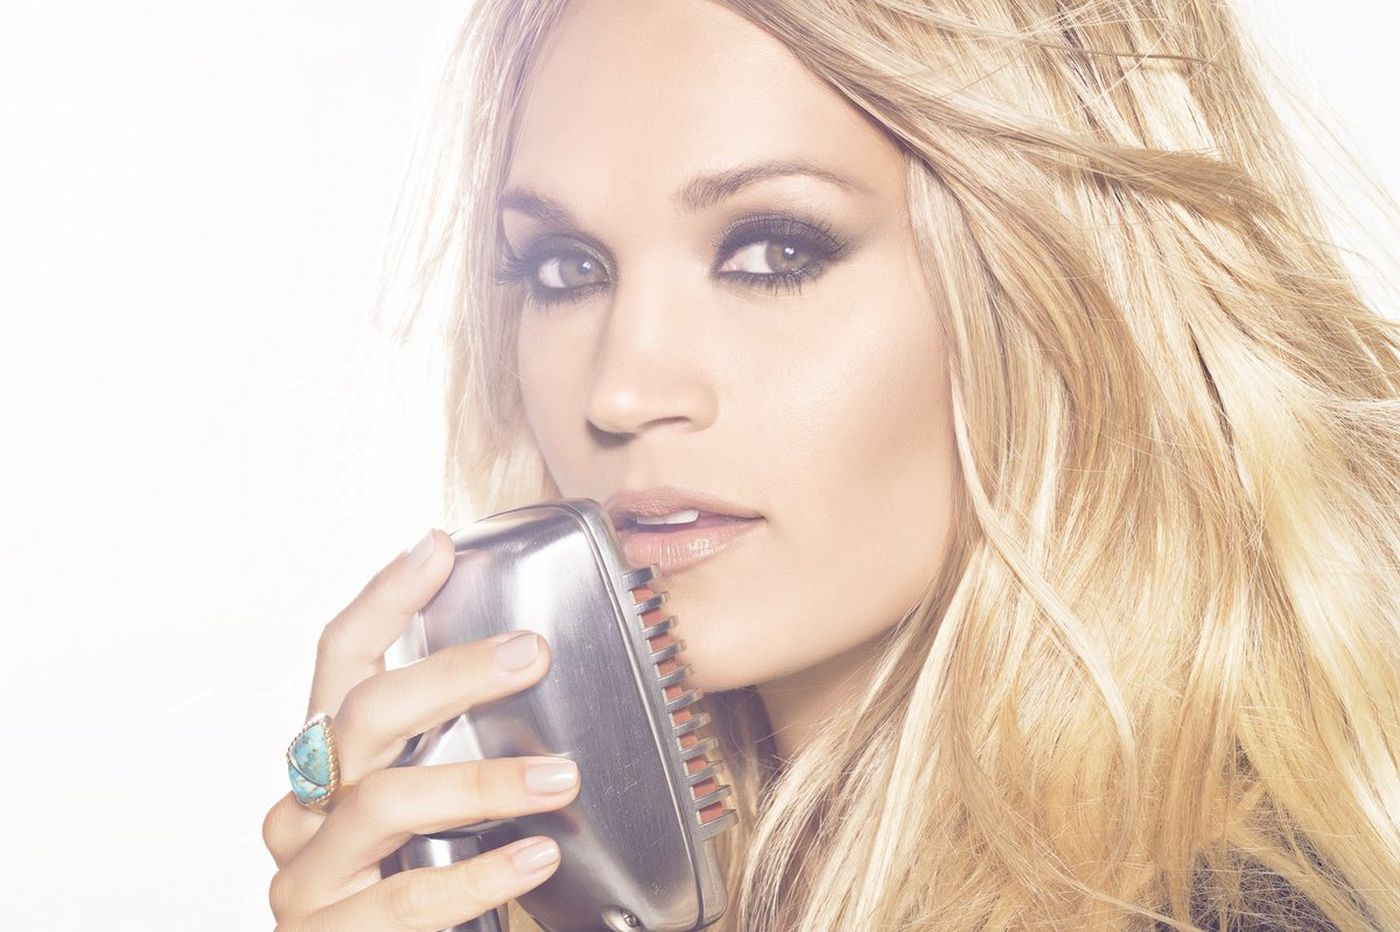 Carrie Underwood coming to The Fillmore